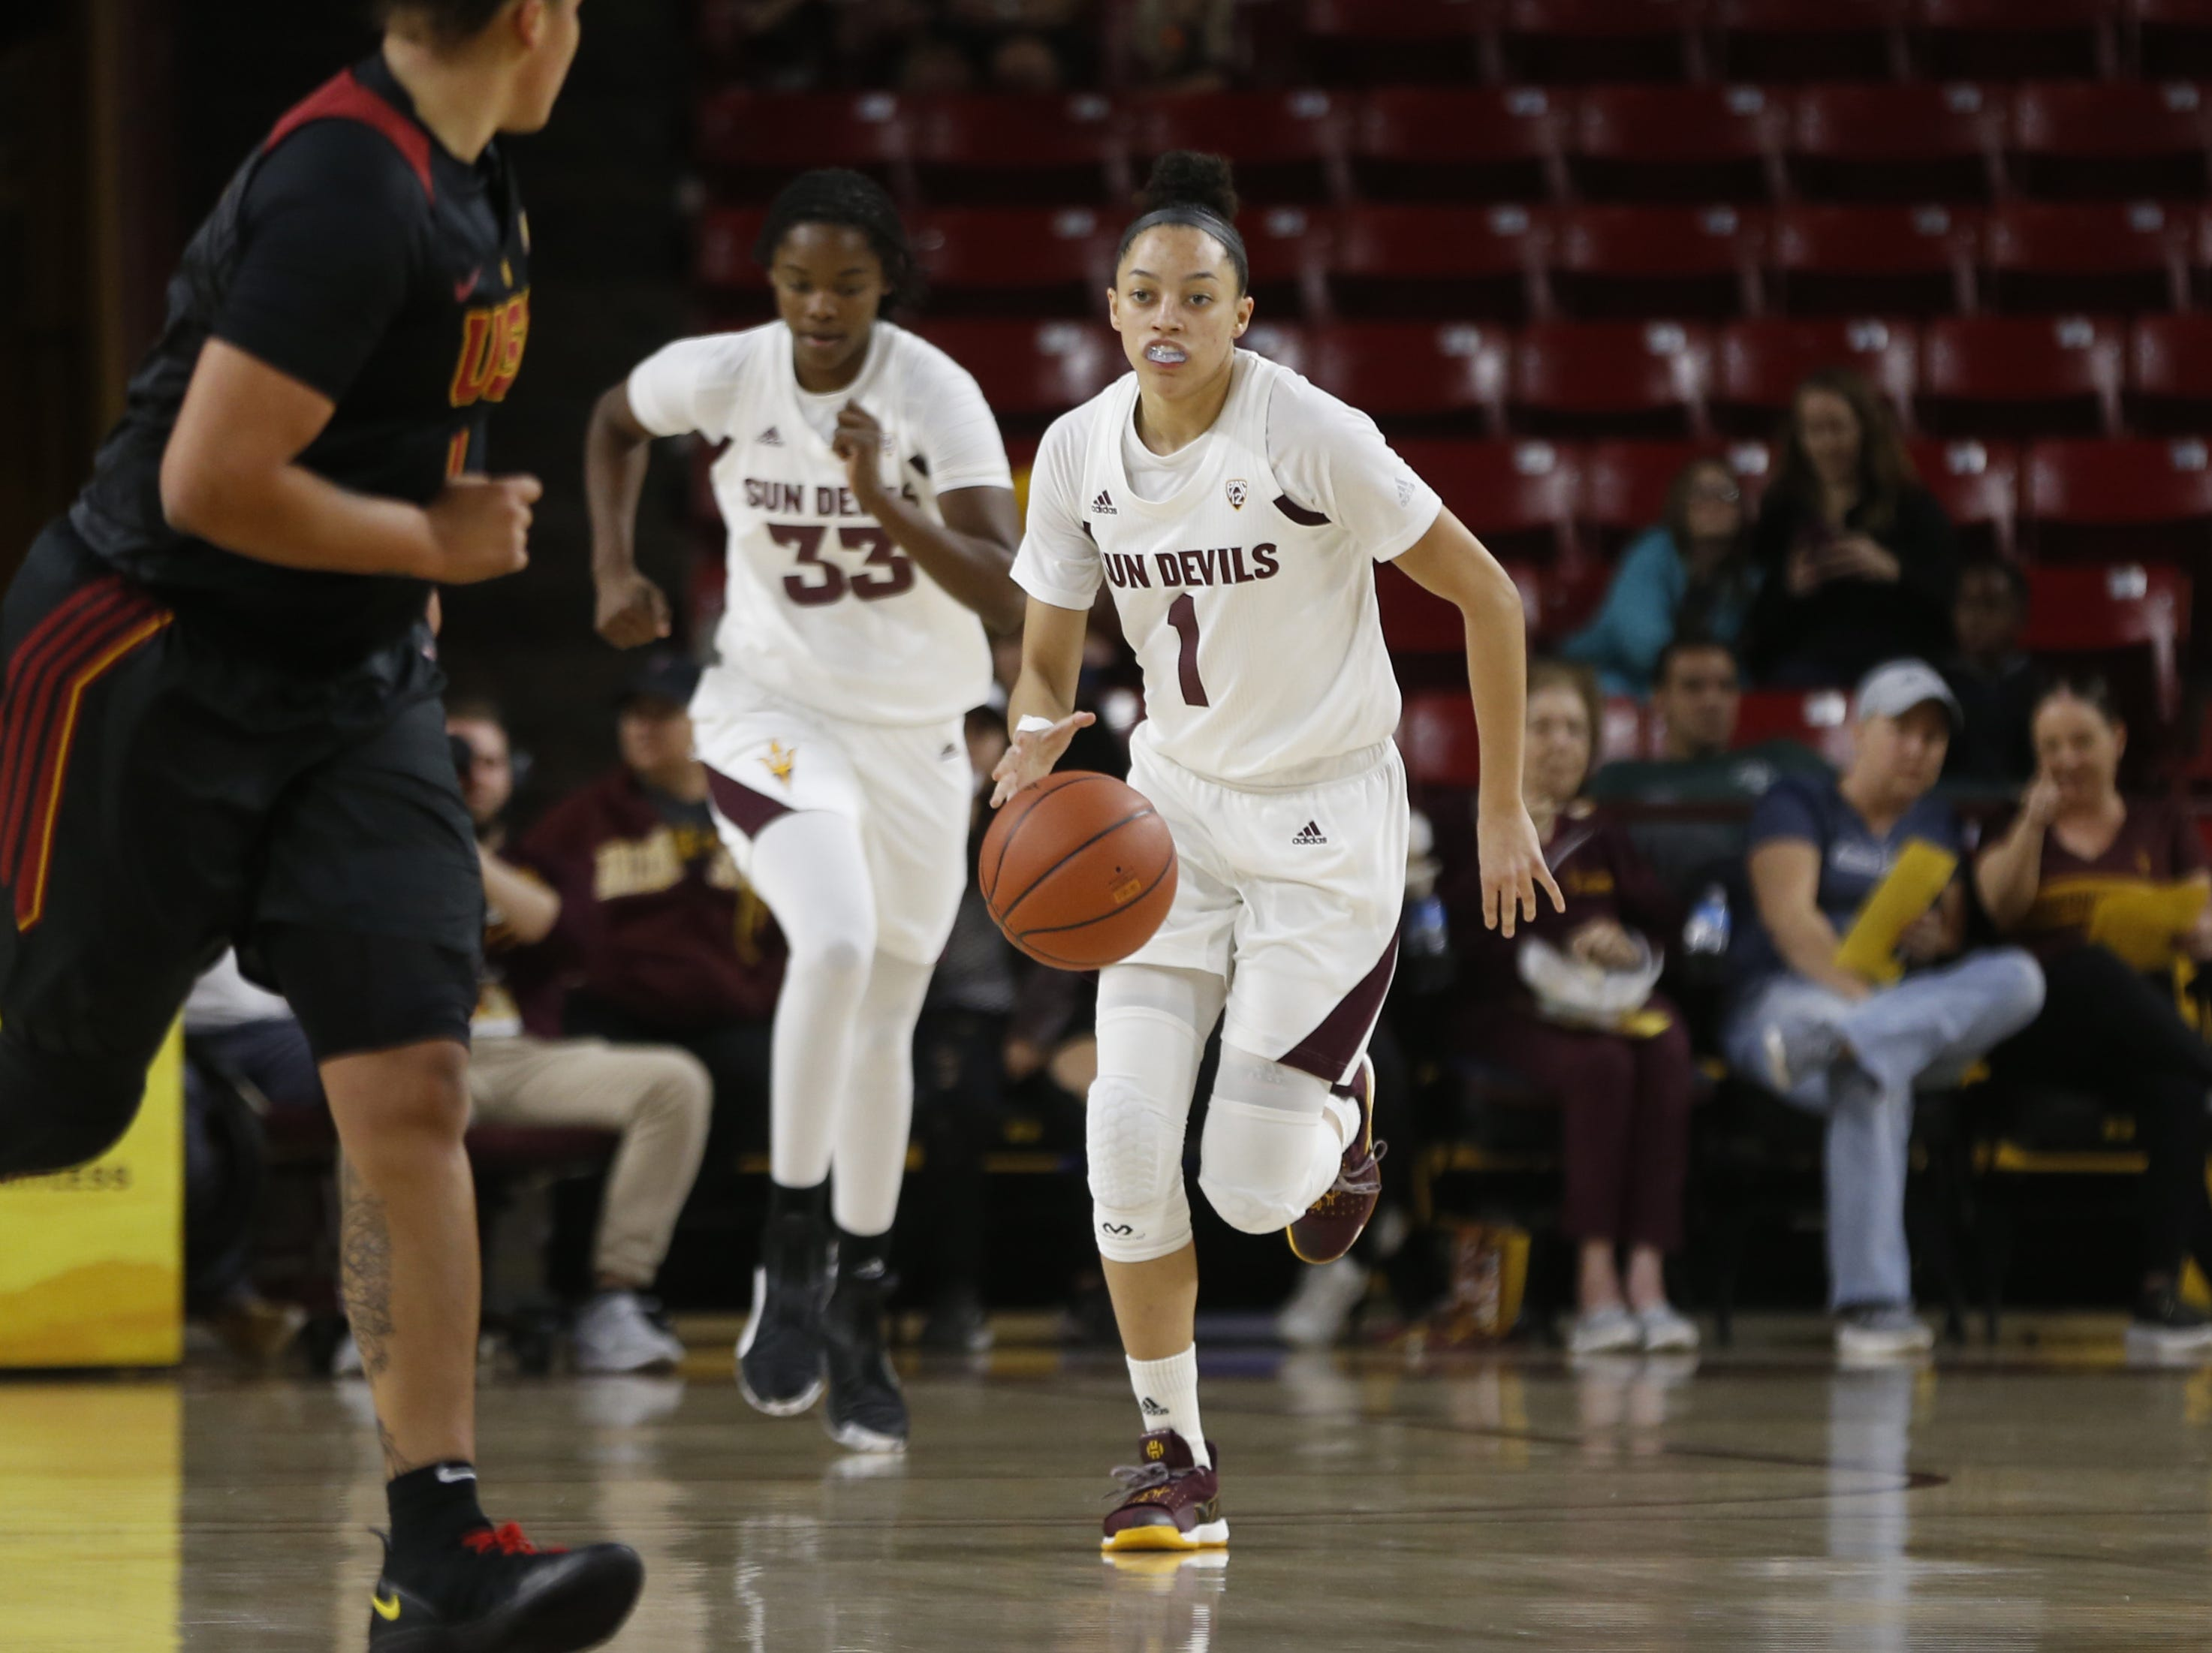 ASU's Reili Richardson (1) drives down the court against USC during the first half at Wells Fargo Arena in Tempe, Ariz. on January 27, 2019.